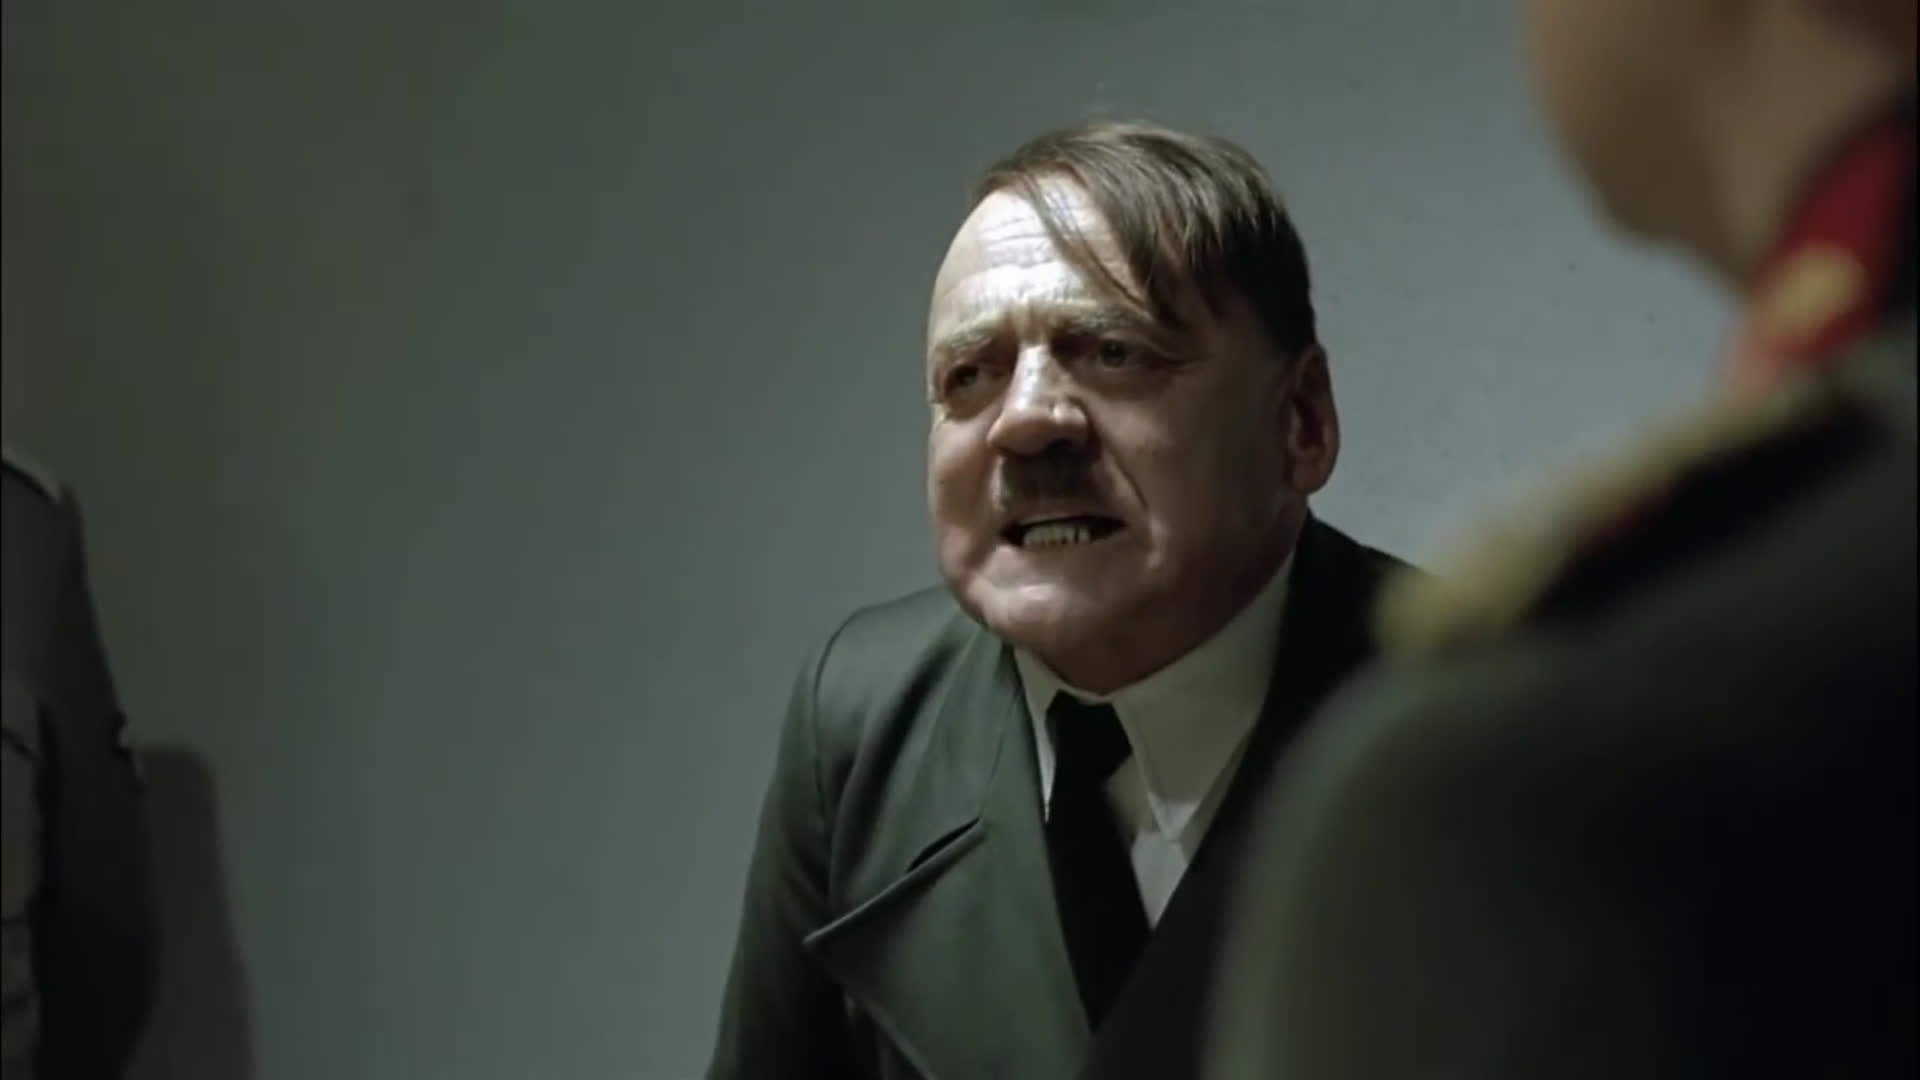 hitler audio project - tegan crowther